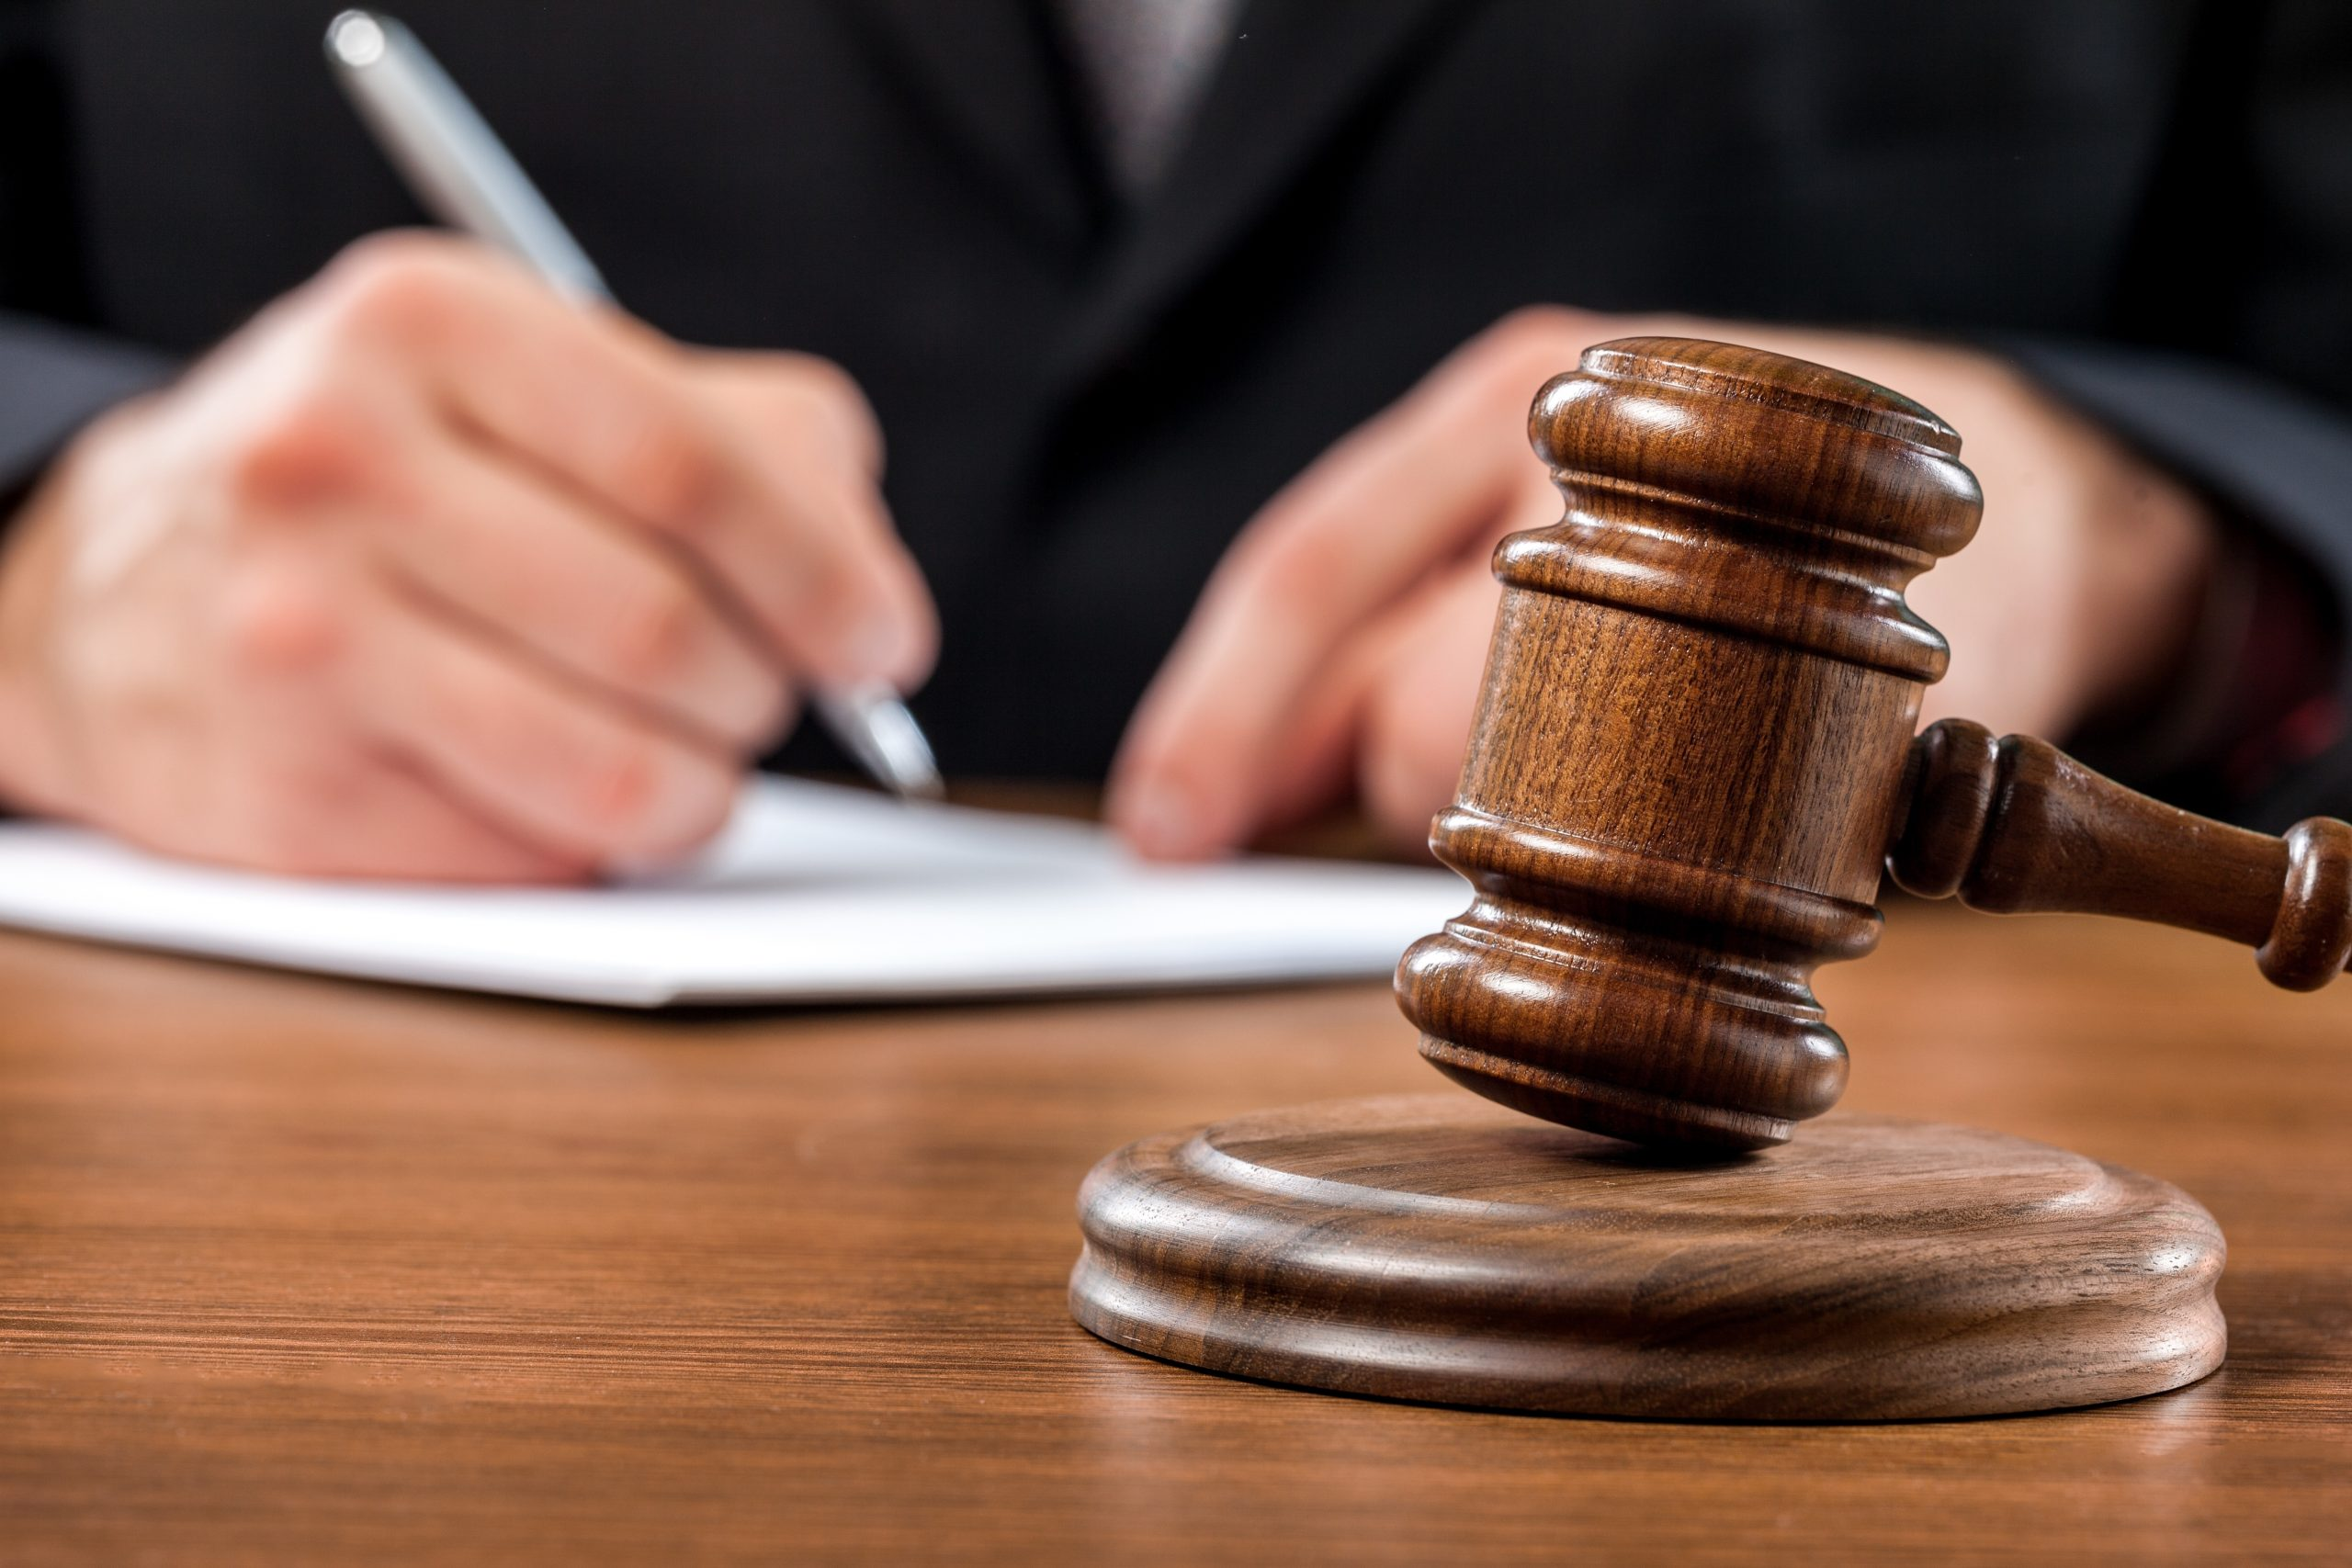 When can a Landlord file a Motion to Lift the Stay on a Writ of Possession?